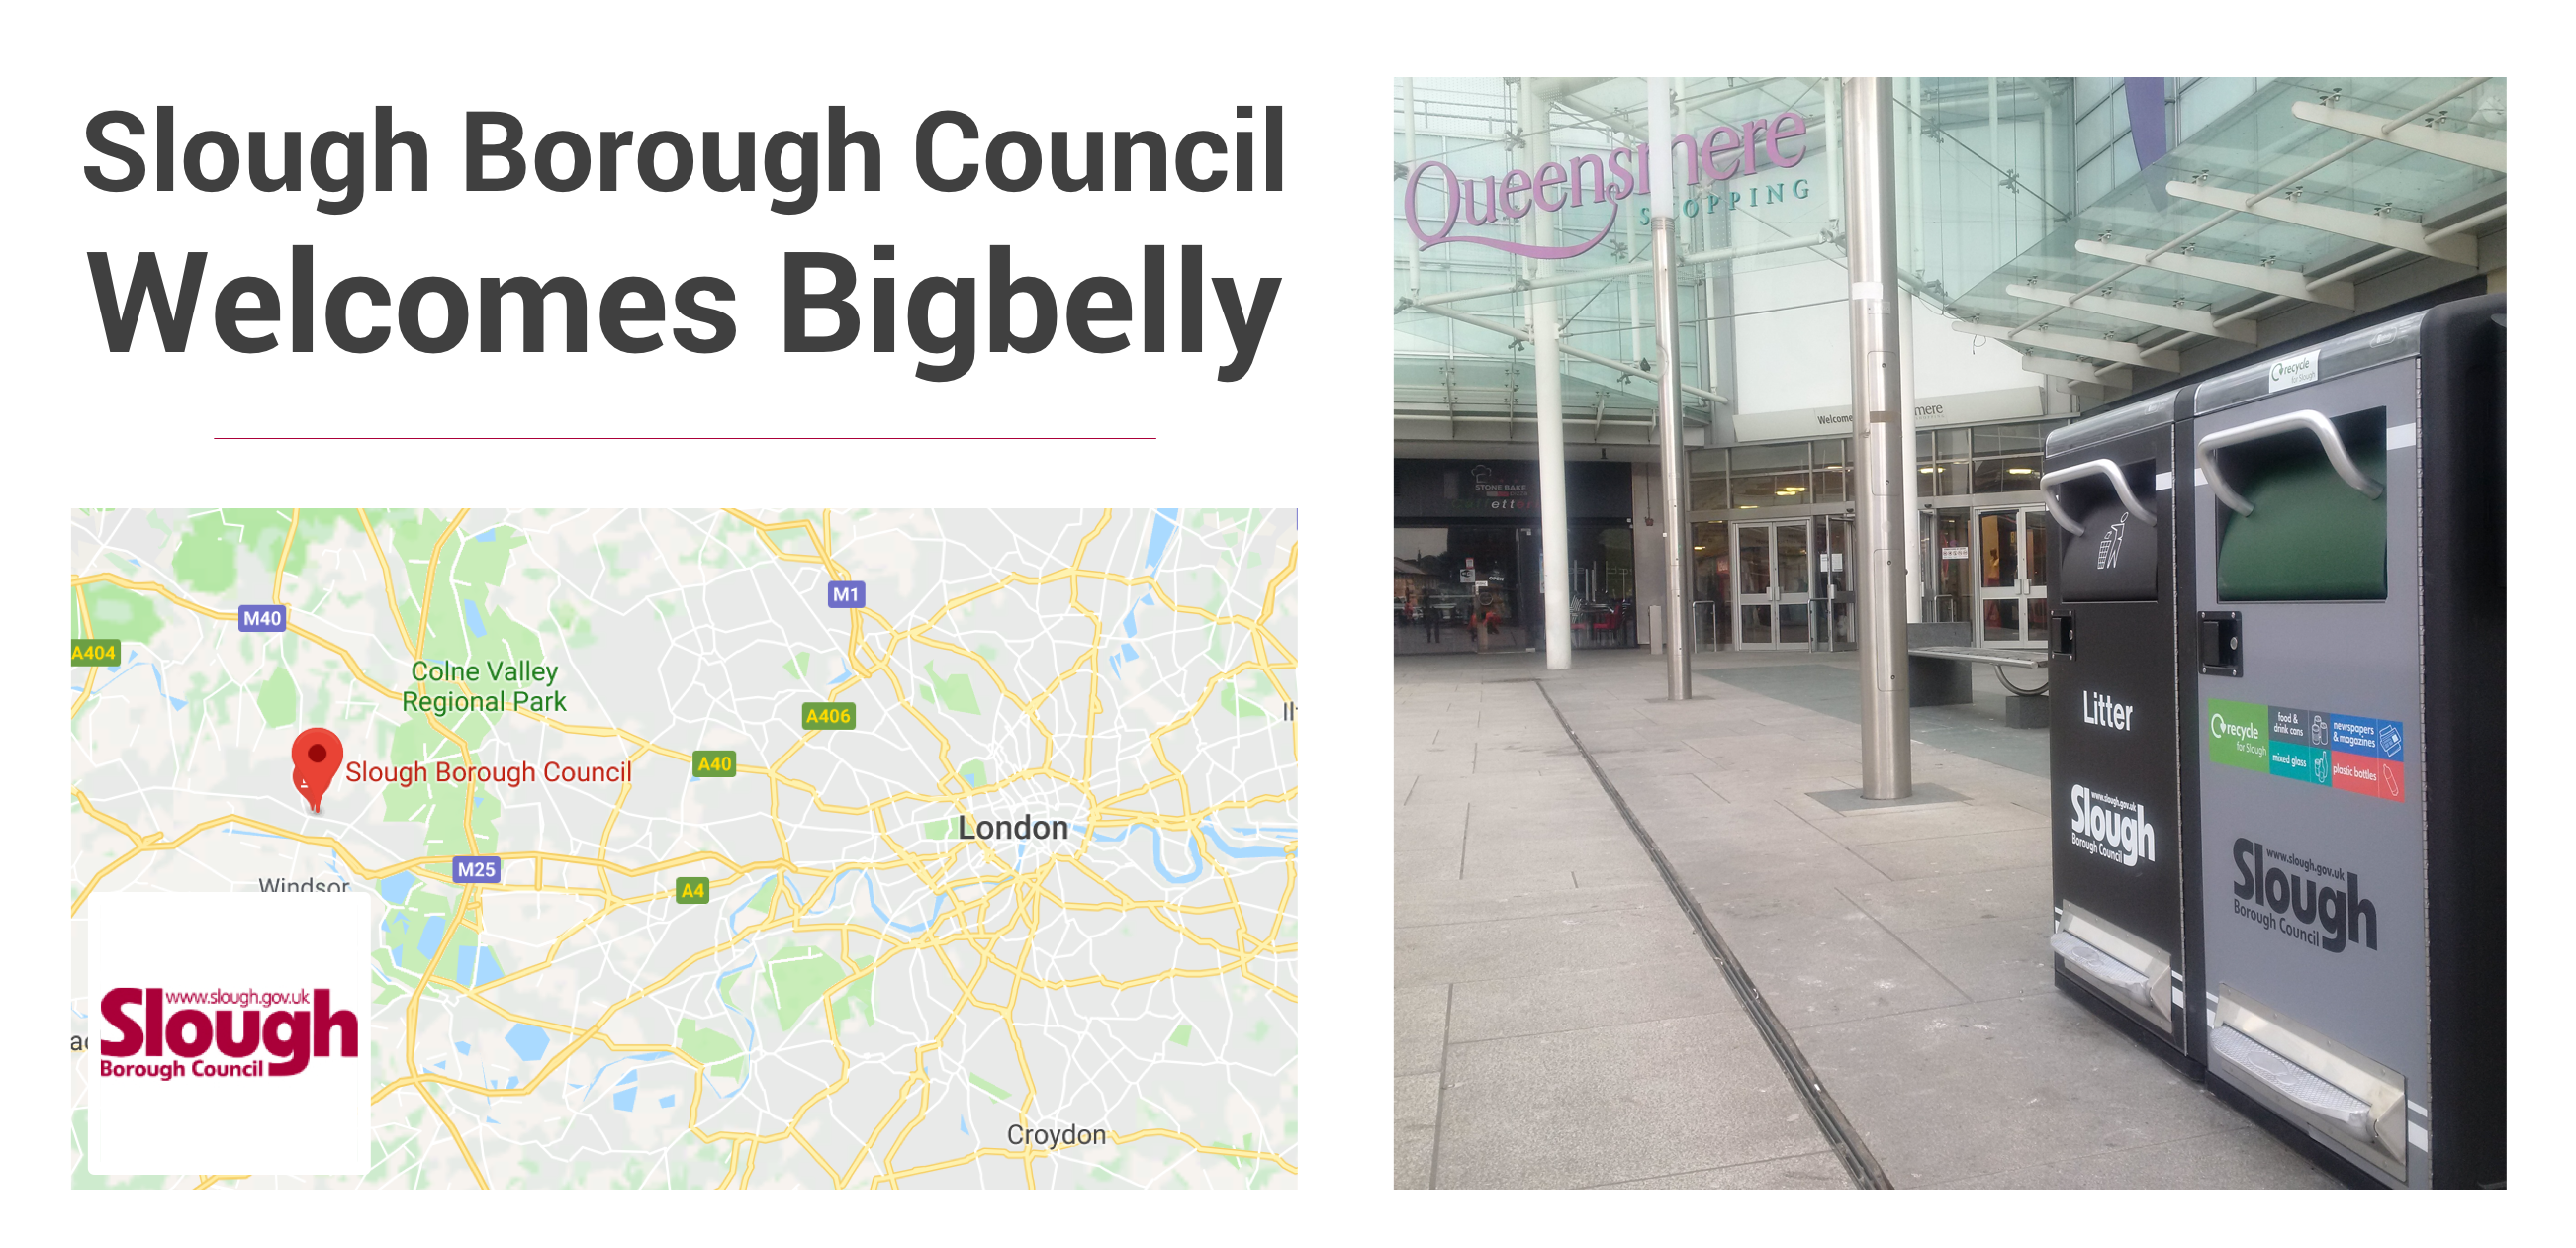 SloughBoroughCouncilBigbelly.png